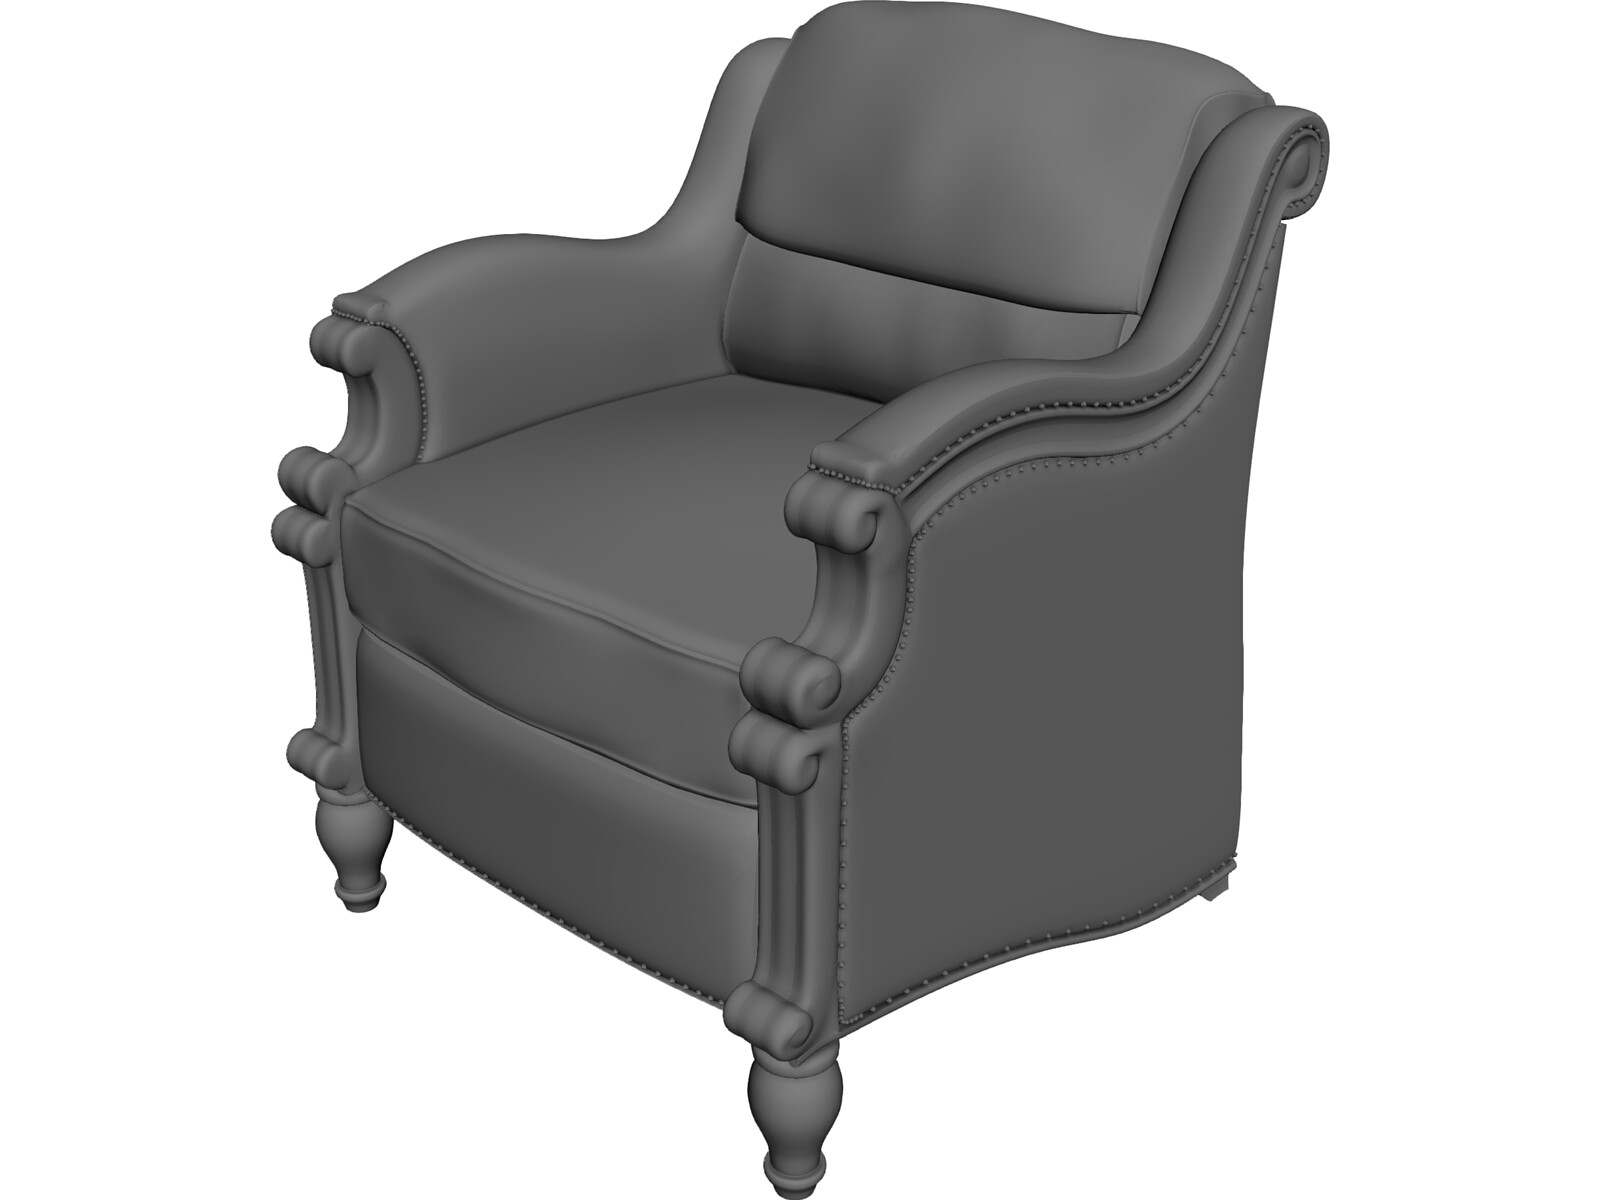 Colonial chair 3d model 3d cad browser for Chair 3d model maya